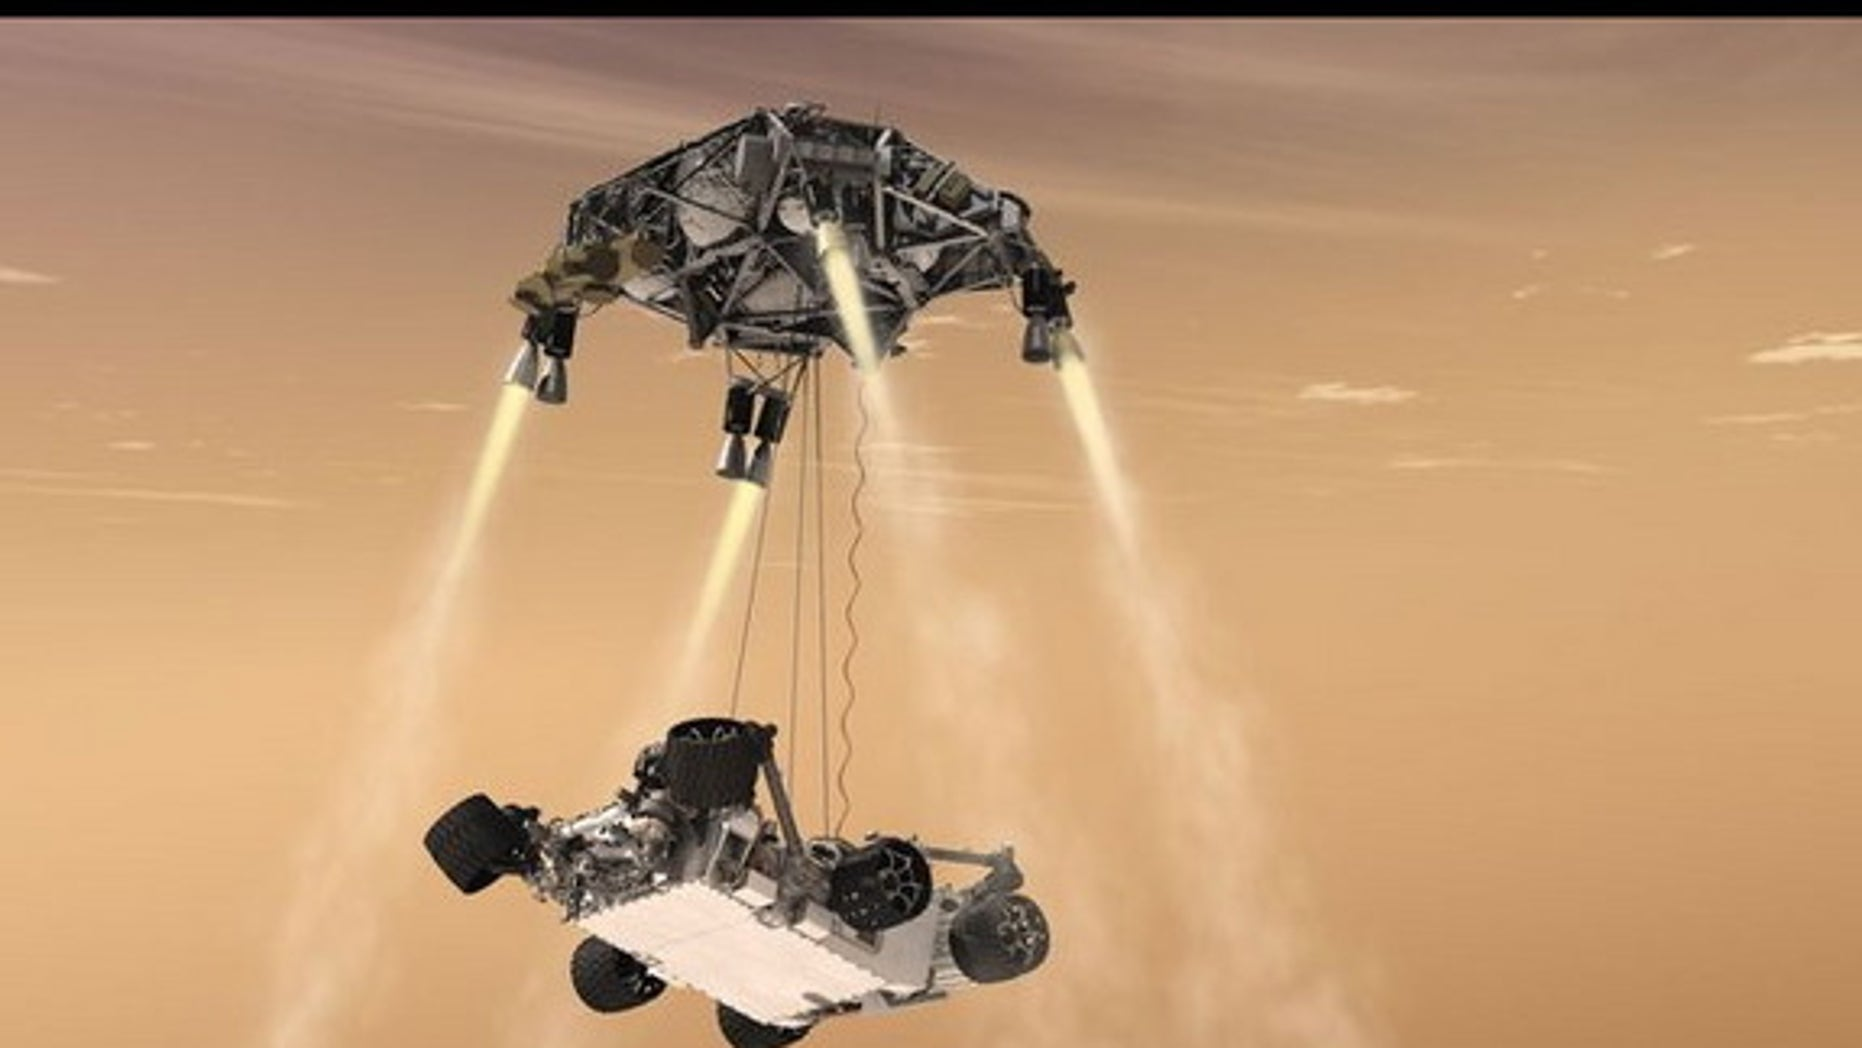 """This artist's concept shows the sky-crane maneuver during the descent of NASA's Curiosity rover to the Martian surface, which engineers dubbed """"seven minutes of terror."""" The Mars 2020 mission will leverage the design of this landing system and"""